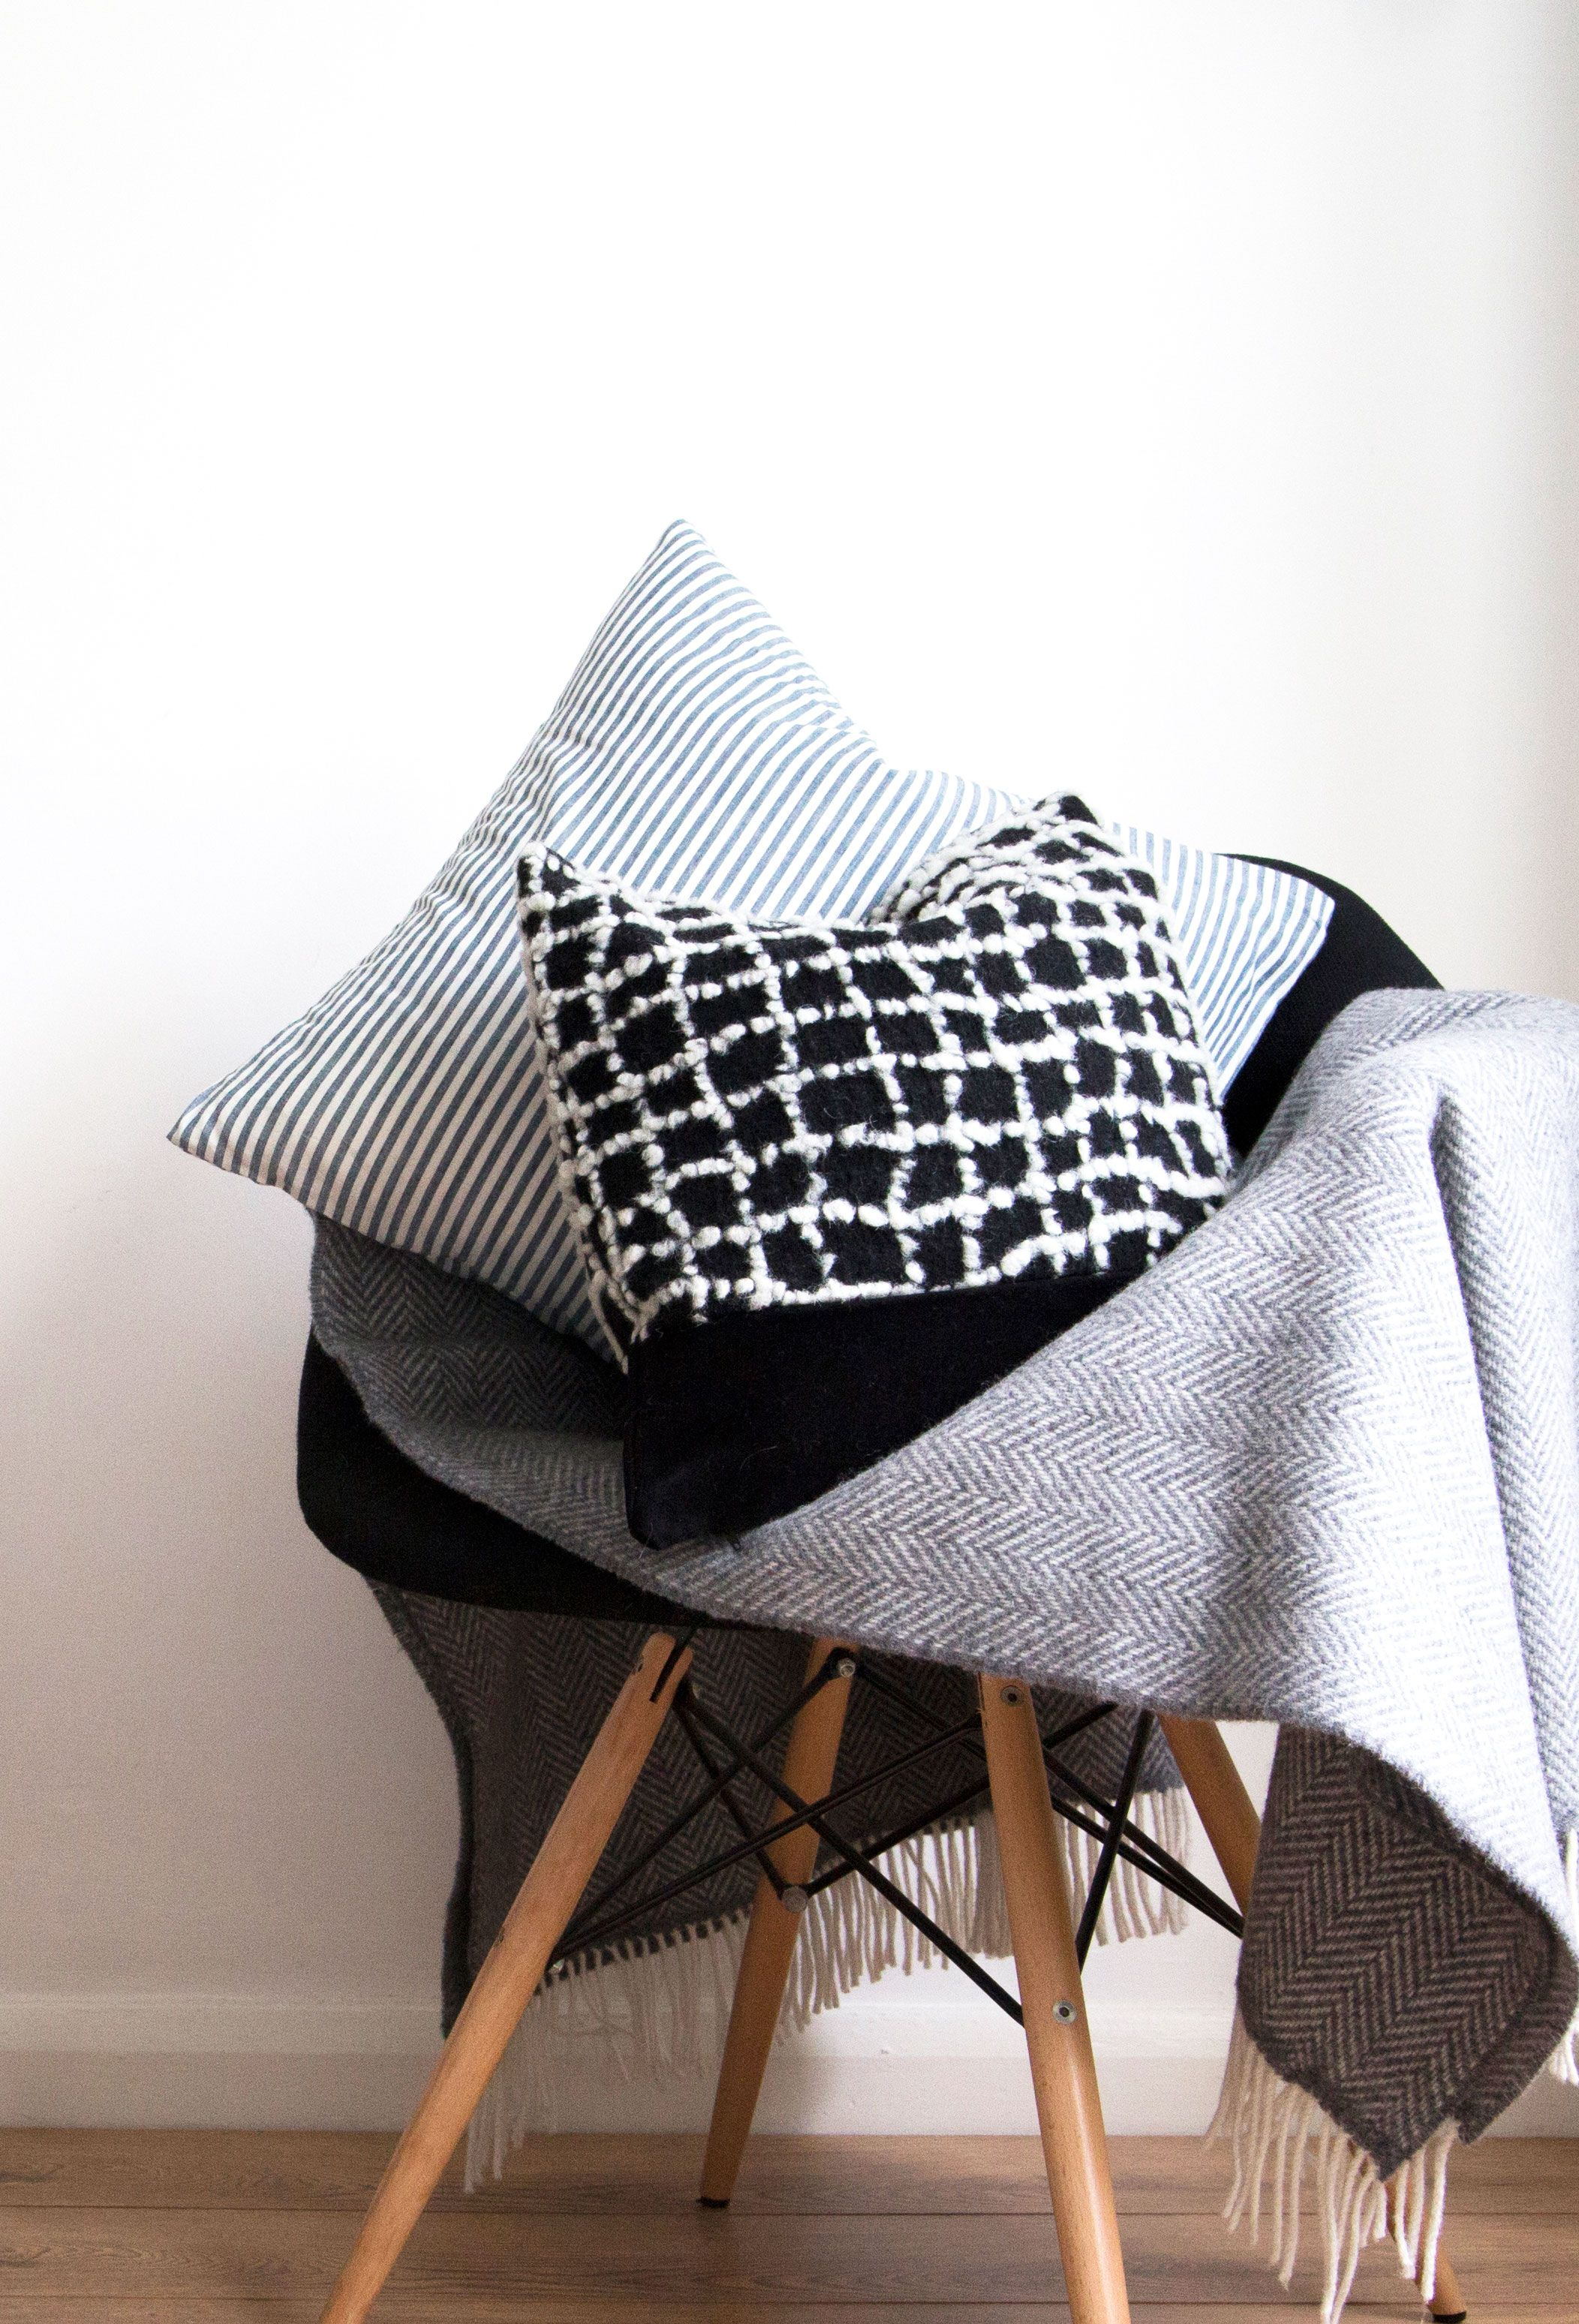 Luxury Scandi Style Cushion Covers On Ohwhatsthis Com Handmade By Lint Homeware Shop Now For Beautiful Cushion Covers Uk Scandinavian Cushions Homewares Shop